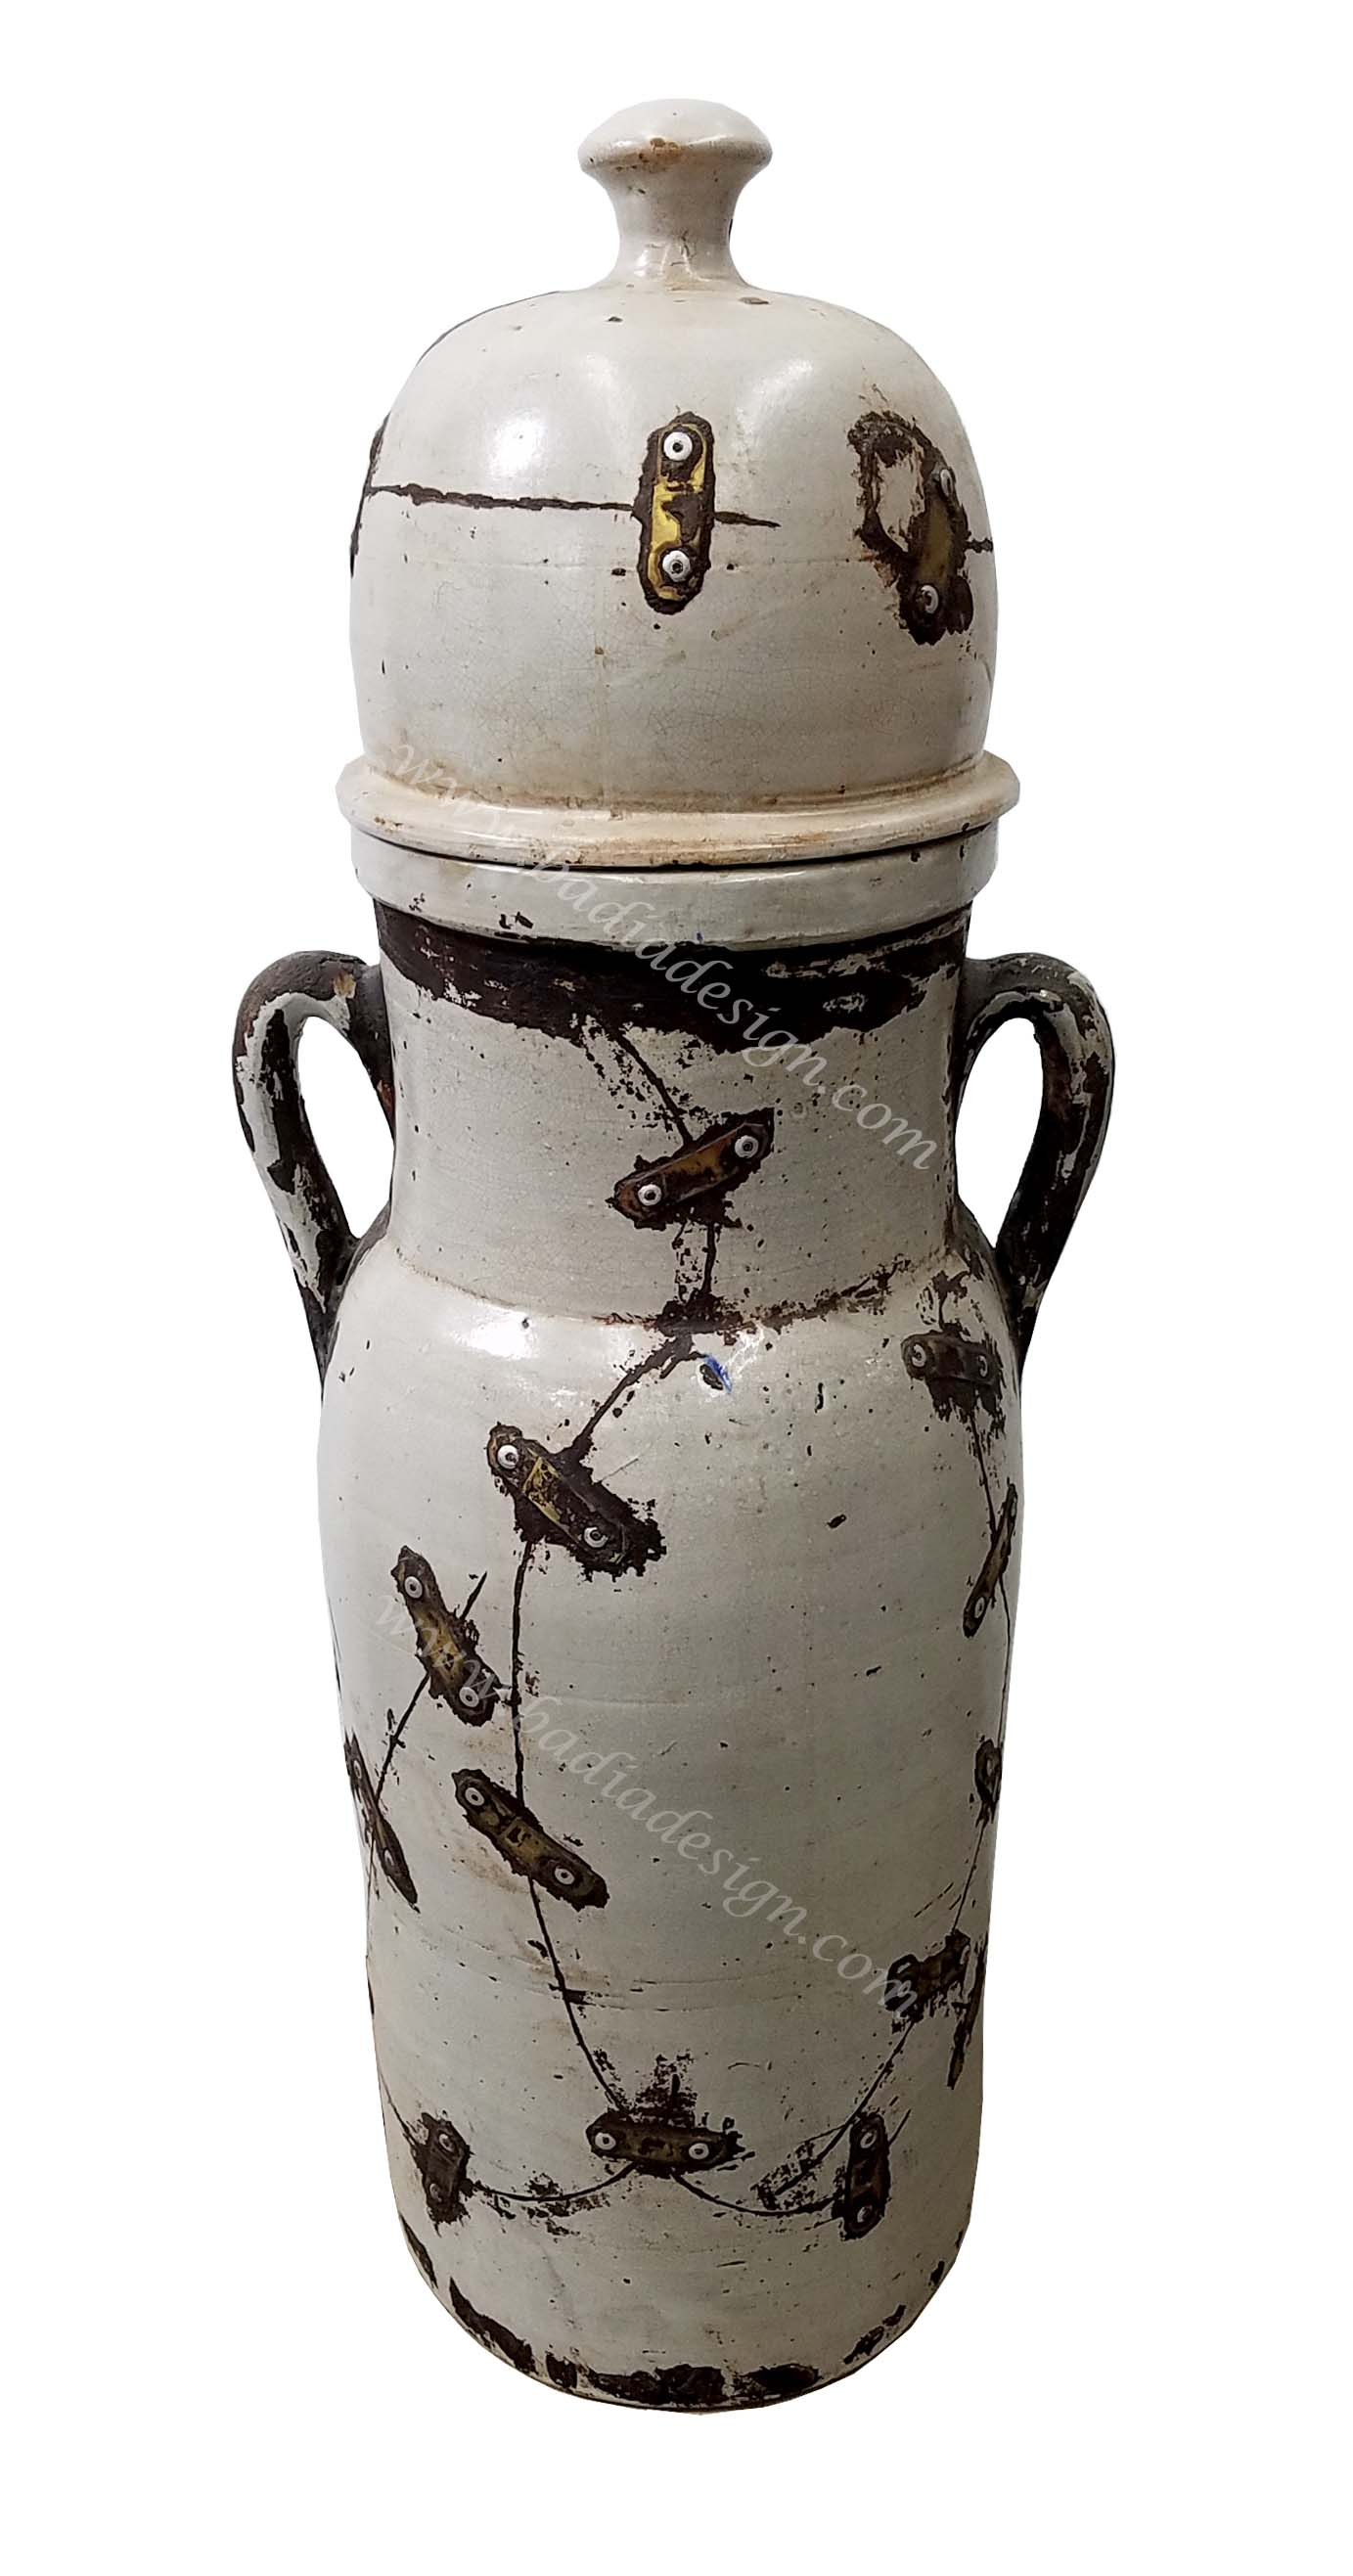 moroccan-vintage-metal-and-ceramic-urn-va067.jpg